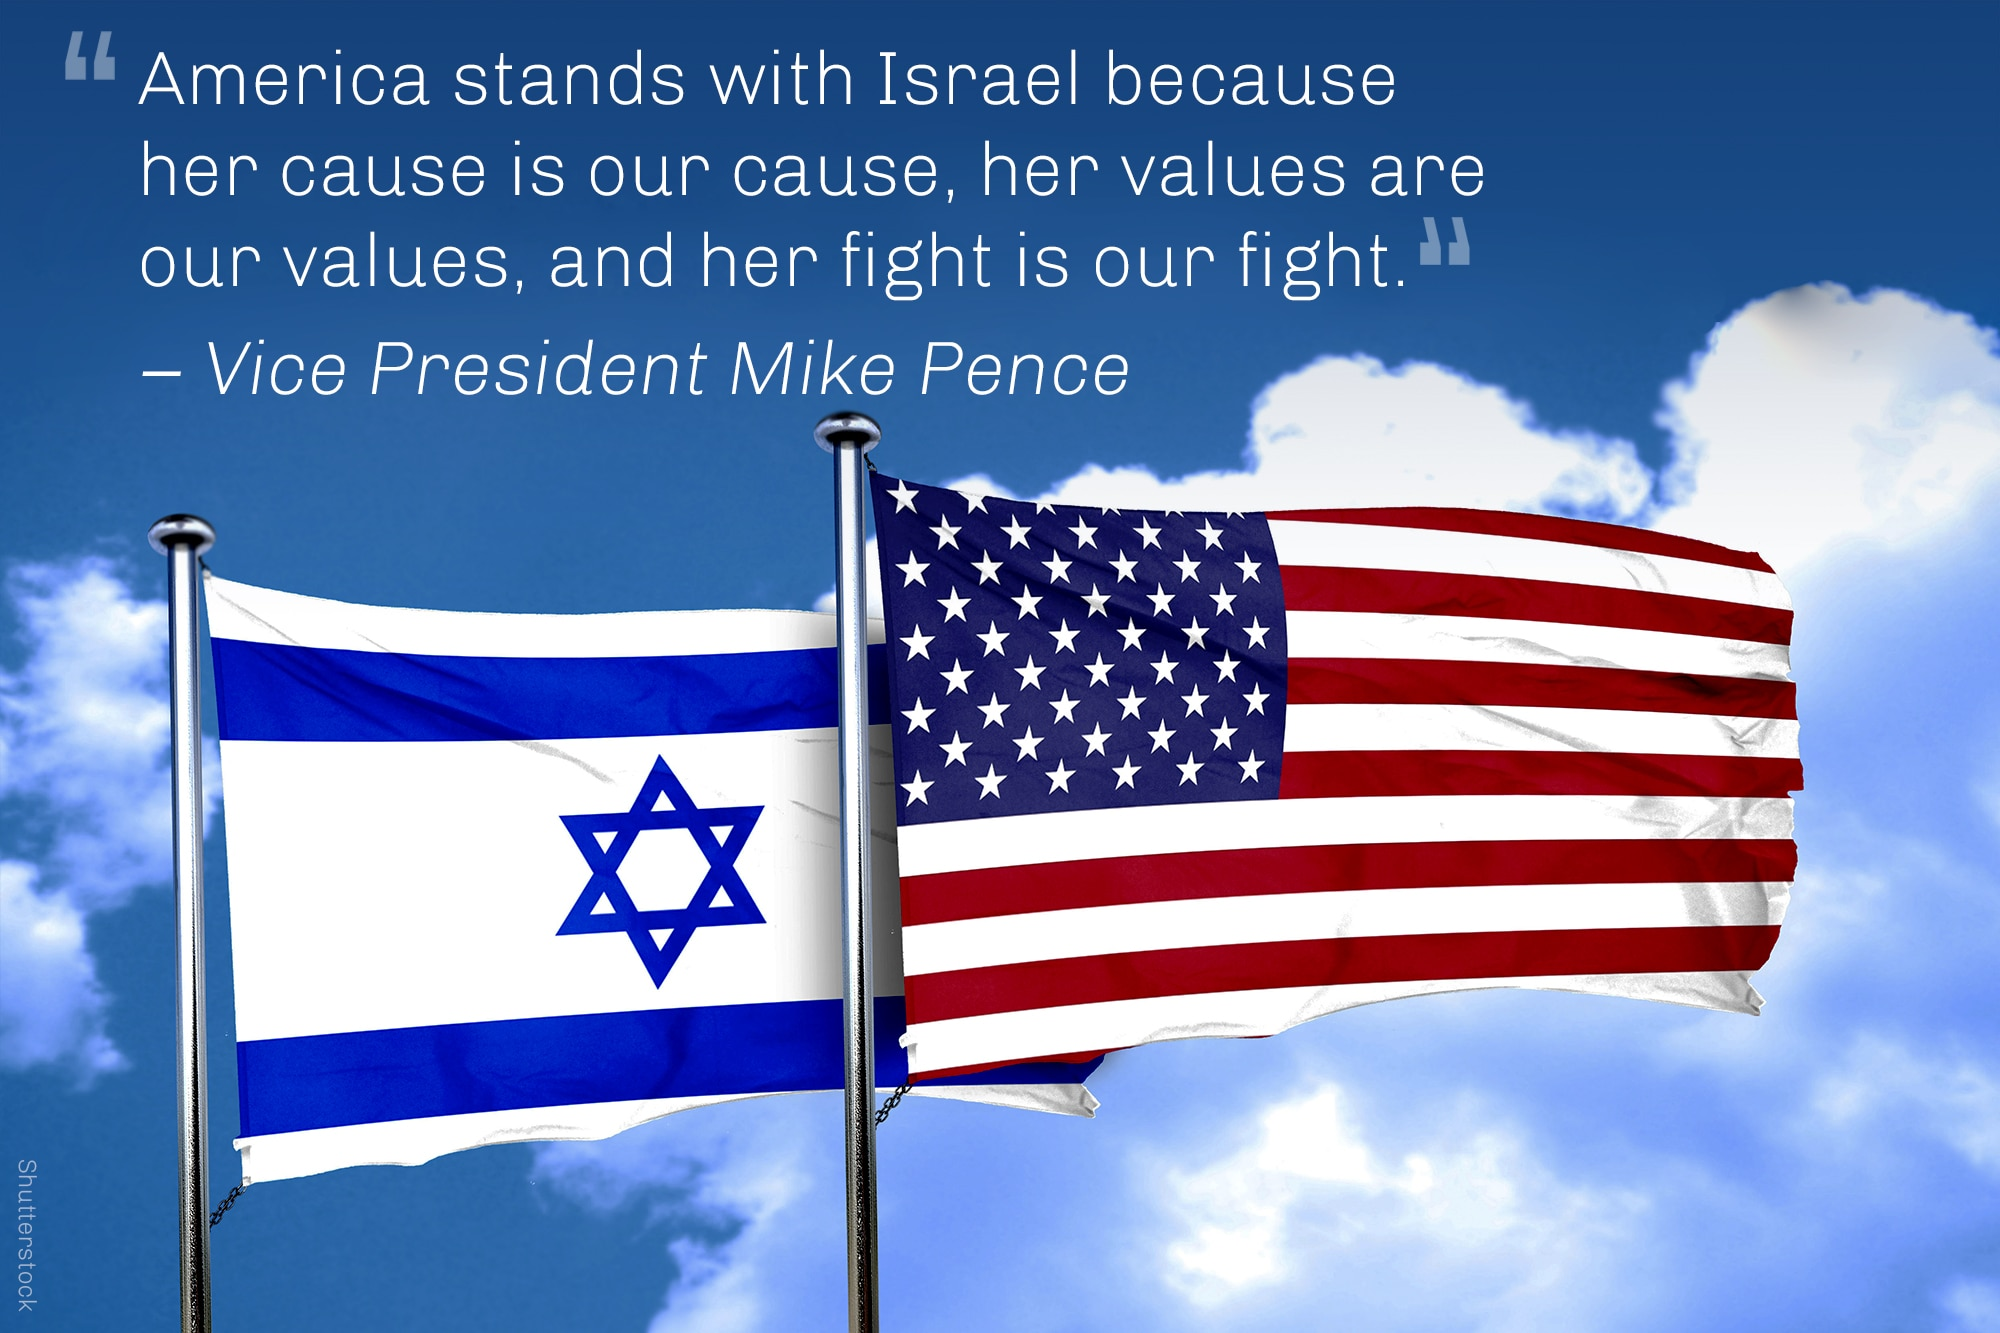 Quote from Vice President Pence on common cause and values, with photo of Israeli and U.S. flags (Shutterstock)